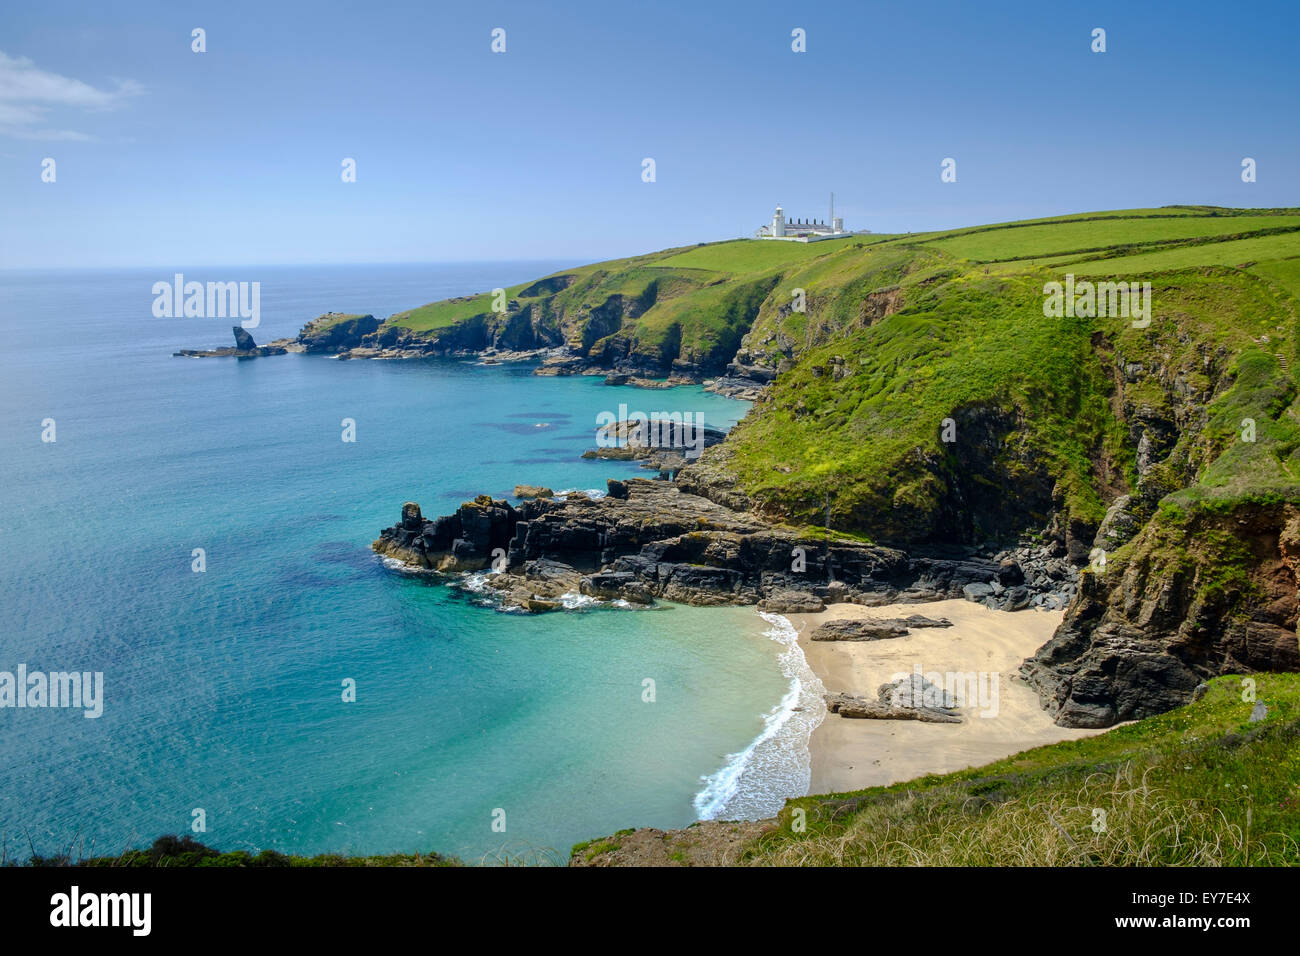 Cornwall coast landscape view of Lizard Point lighthouse, headland and Housel Bay cove beach, Lizard Peninsula, - Stock Image